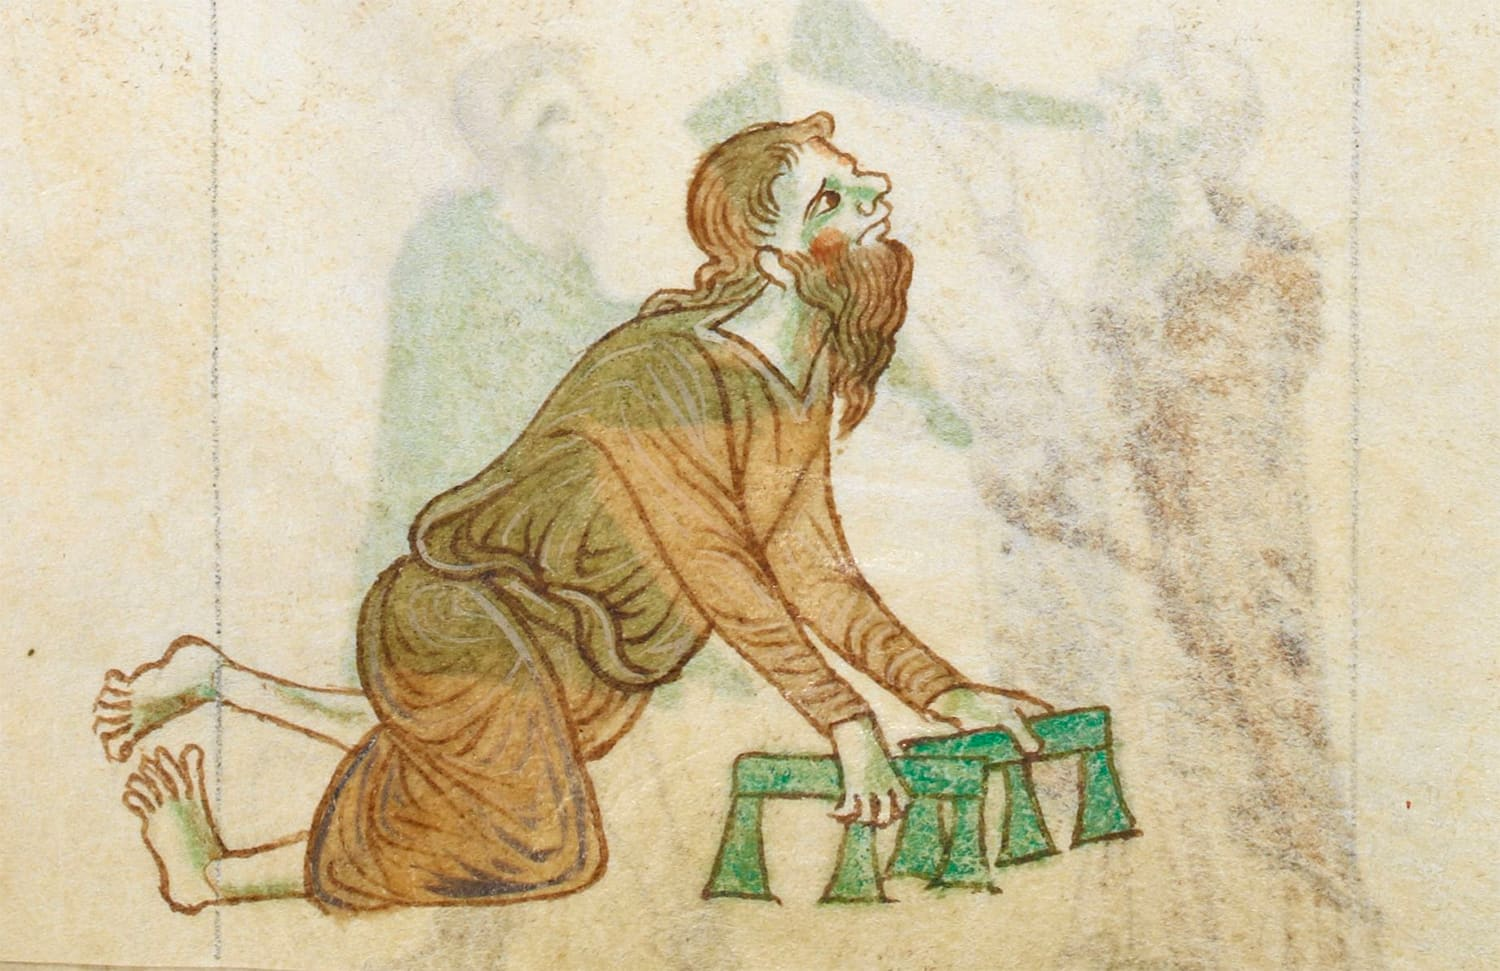 This picture shows a crippled man in the margins of The History and Topography of Ireland by Gerald of Wales.